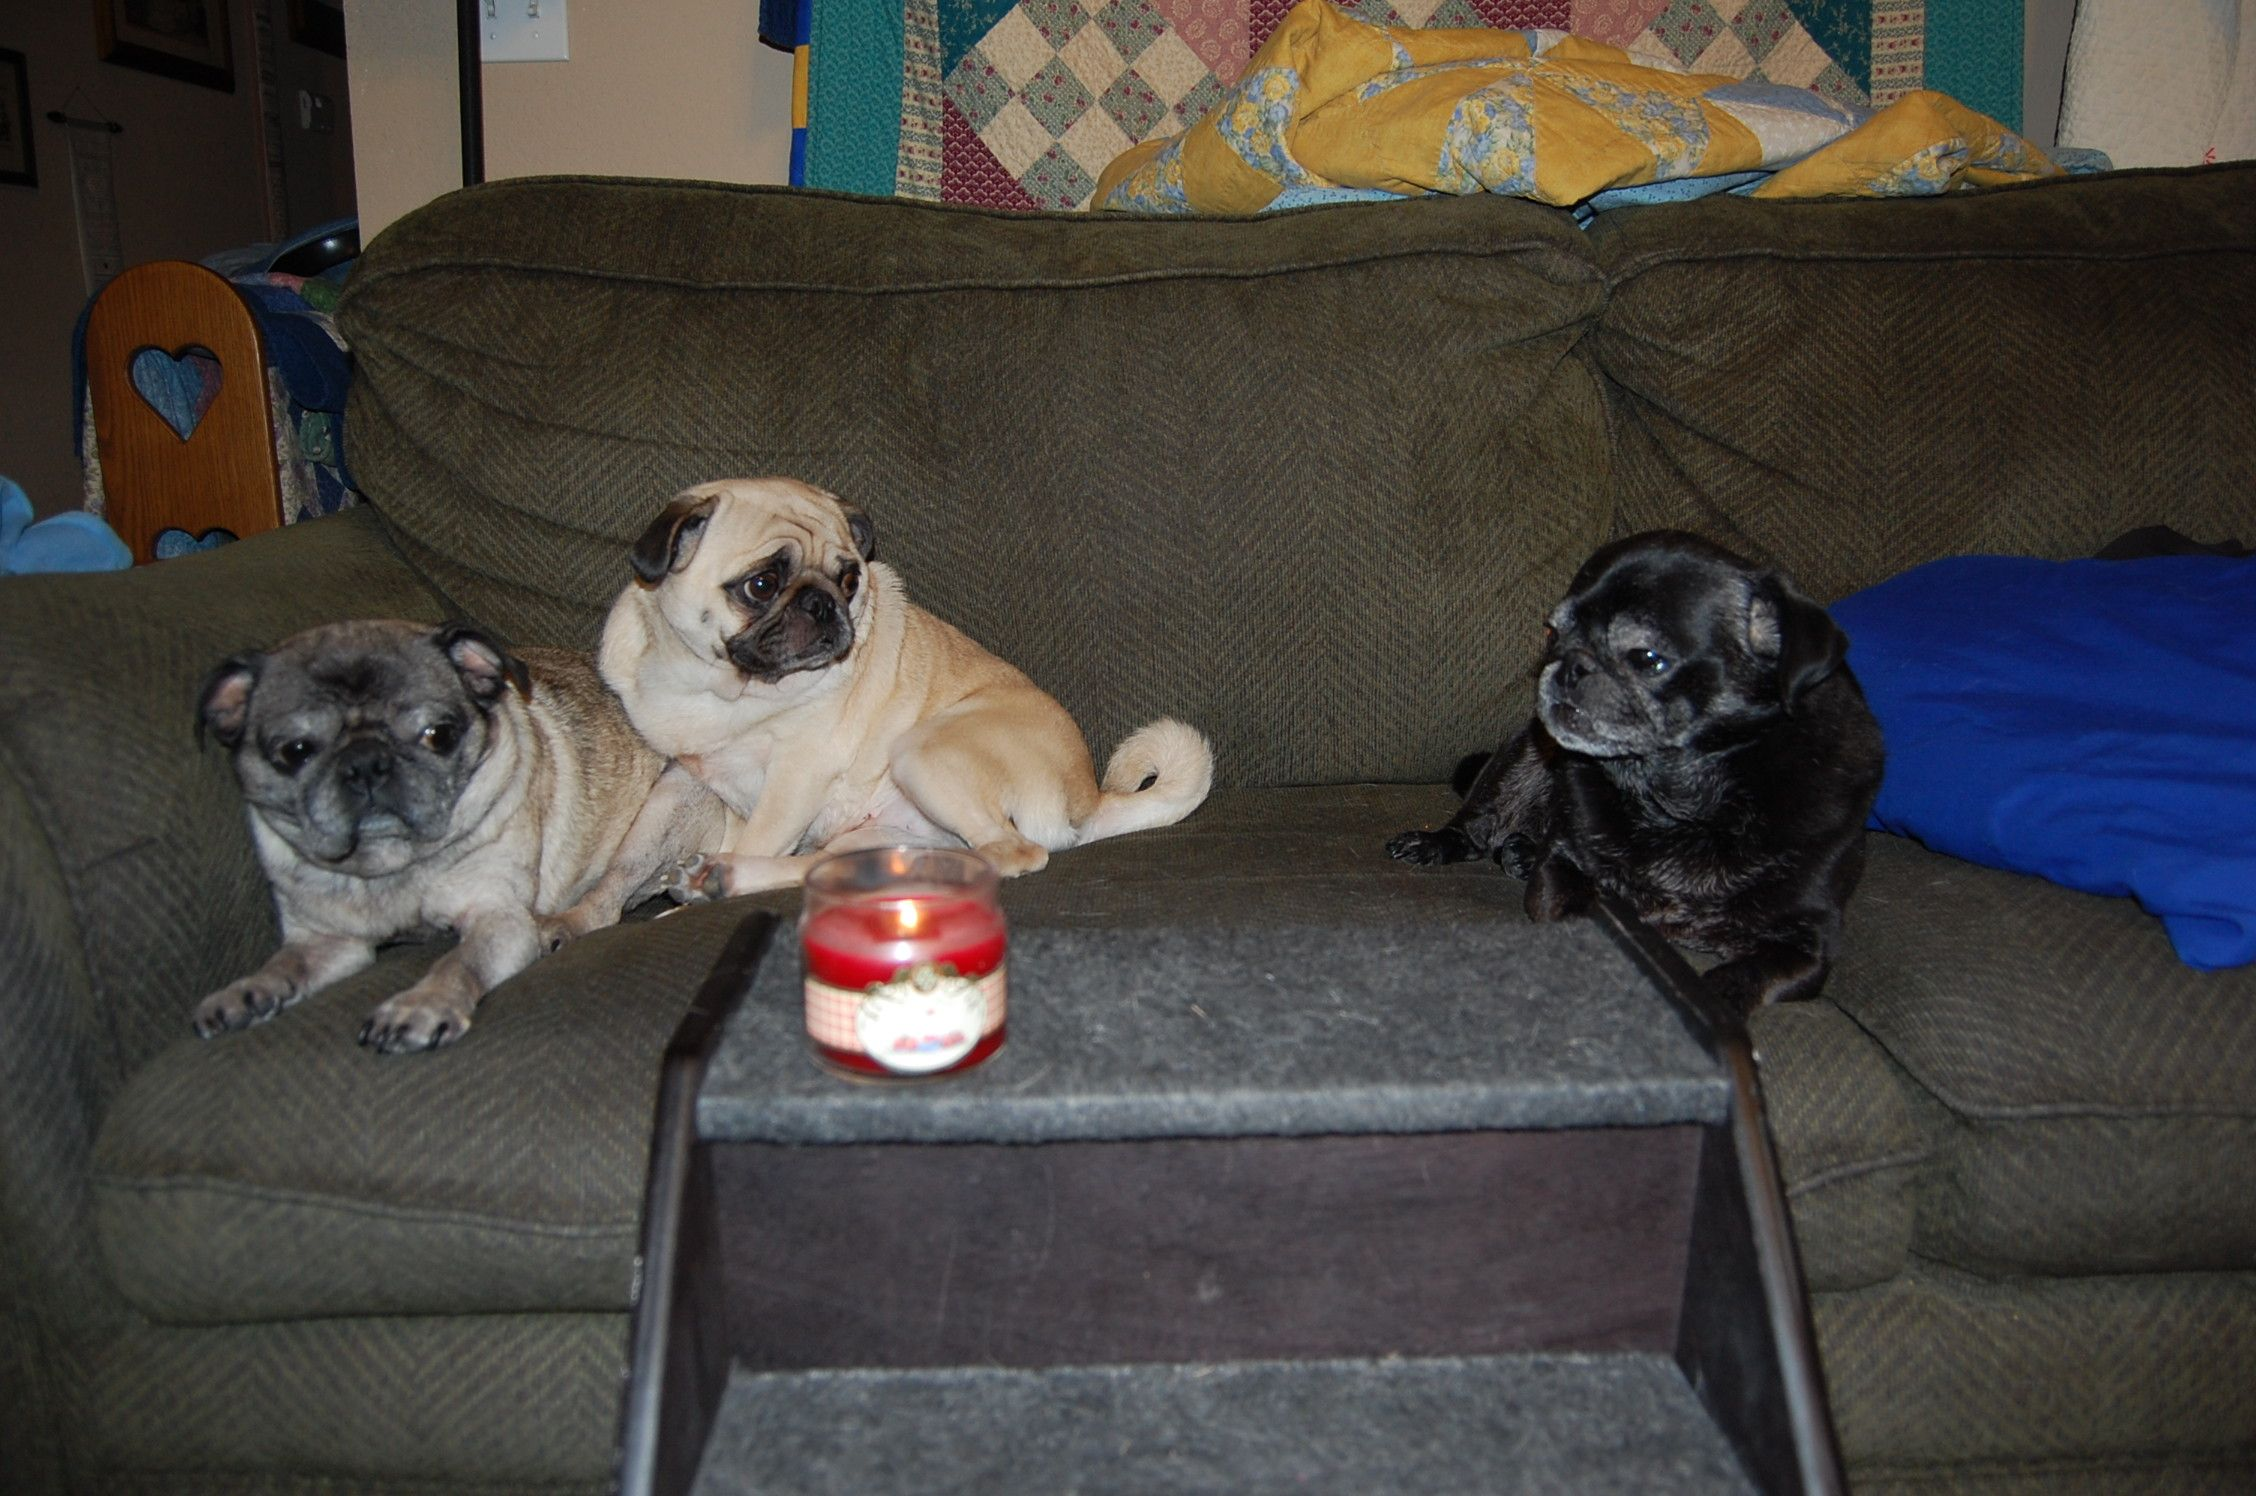 A candle is lit in ar for sweet gretchen pug hugs and kisses from